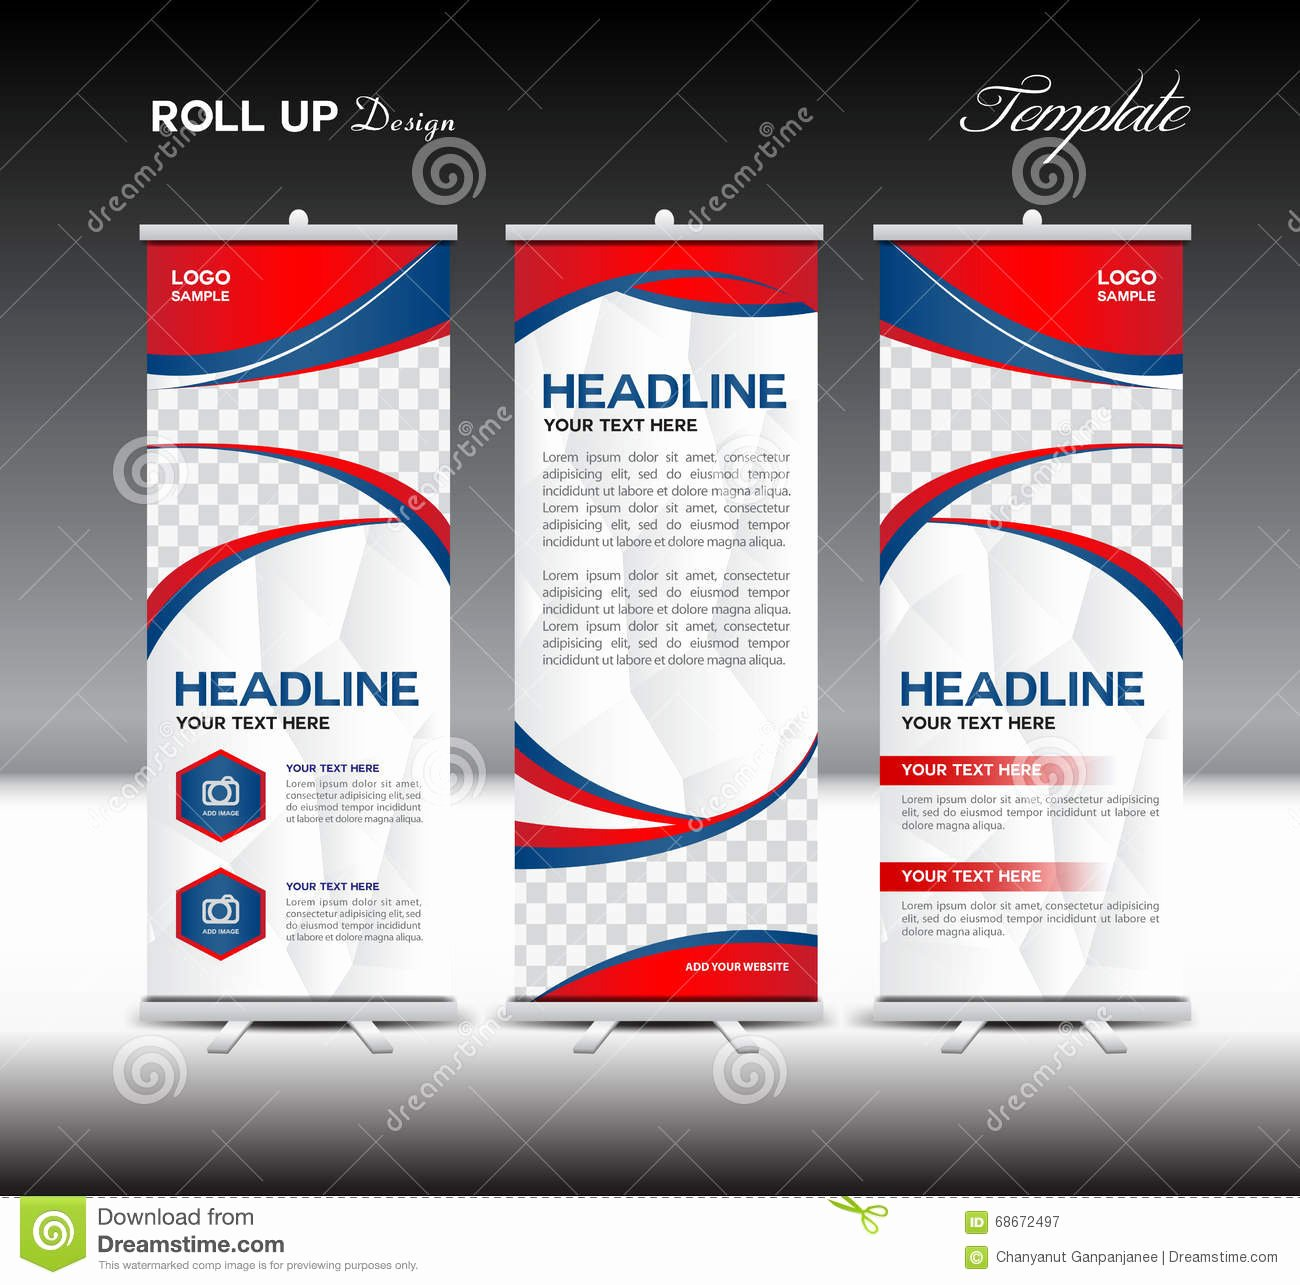 Roll Up Banner Template New Red and Blue Roll Up Banner Template Vector Illustration